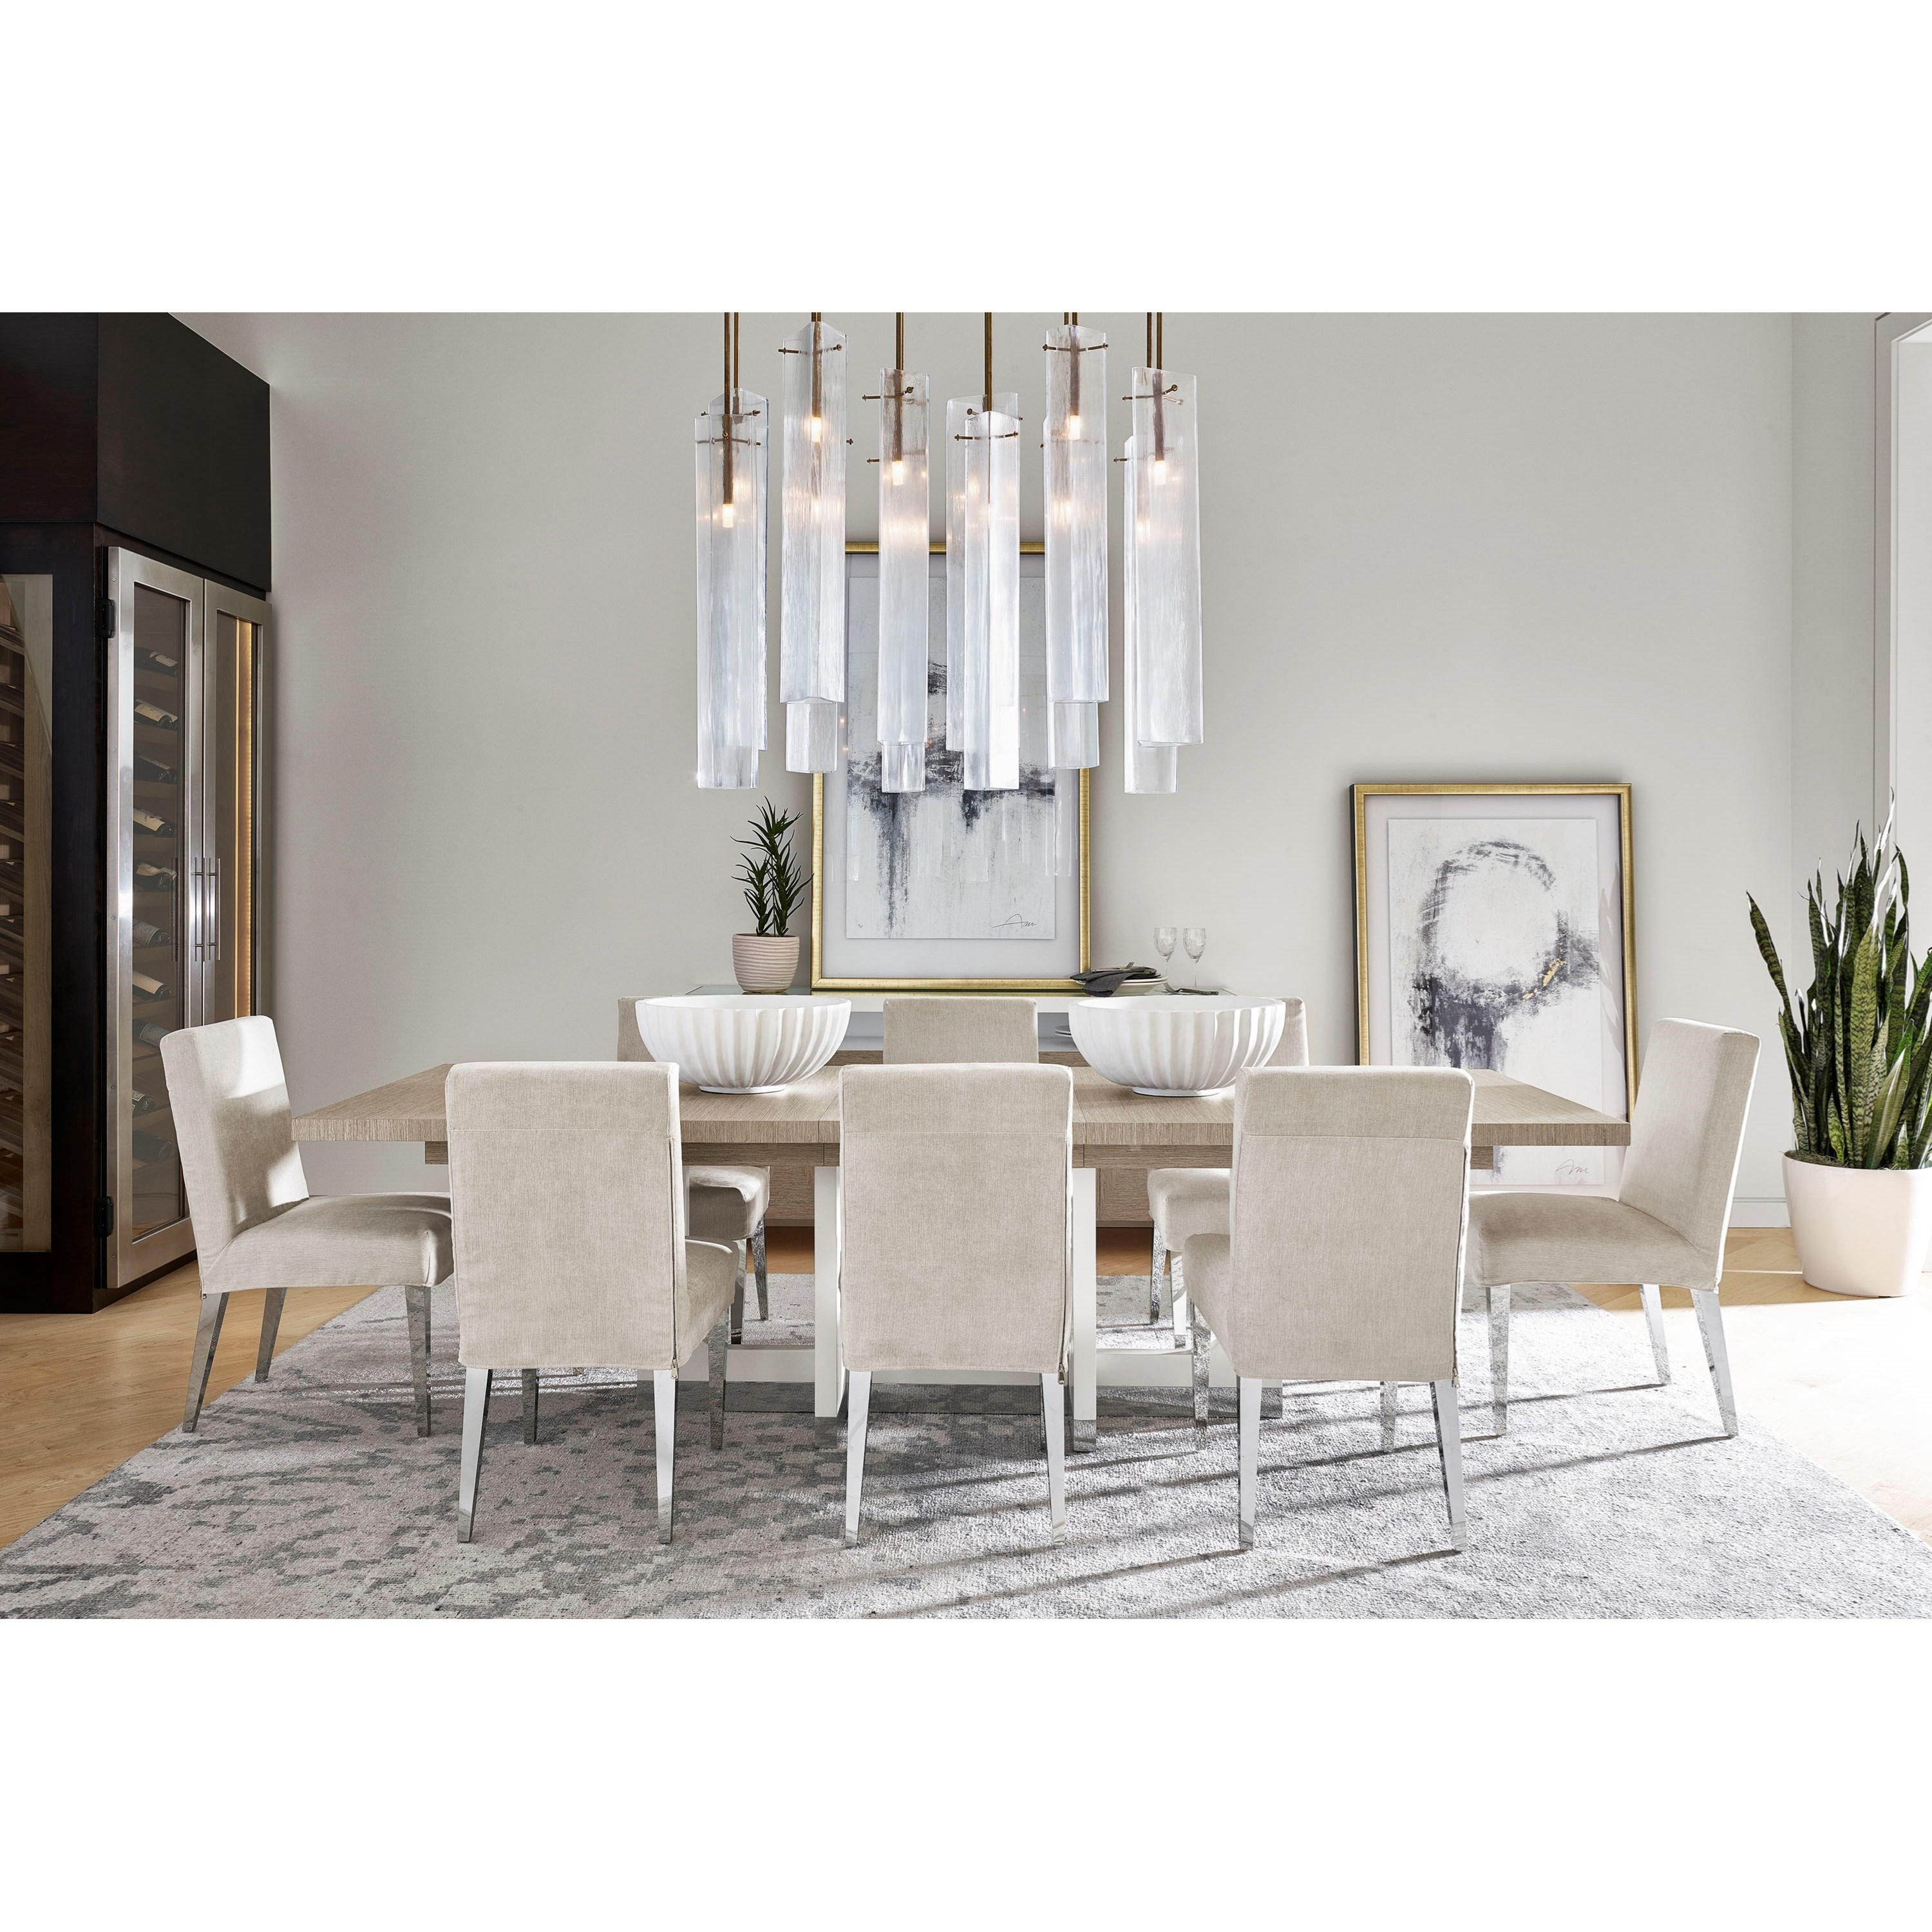 Modern 9-Piece Marley Dining Table Set by Universal at Baer's Furniture